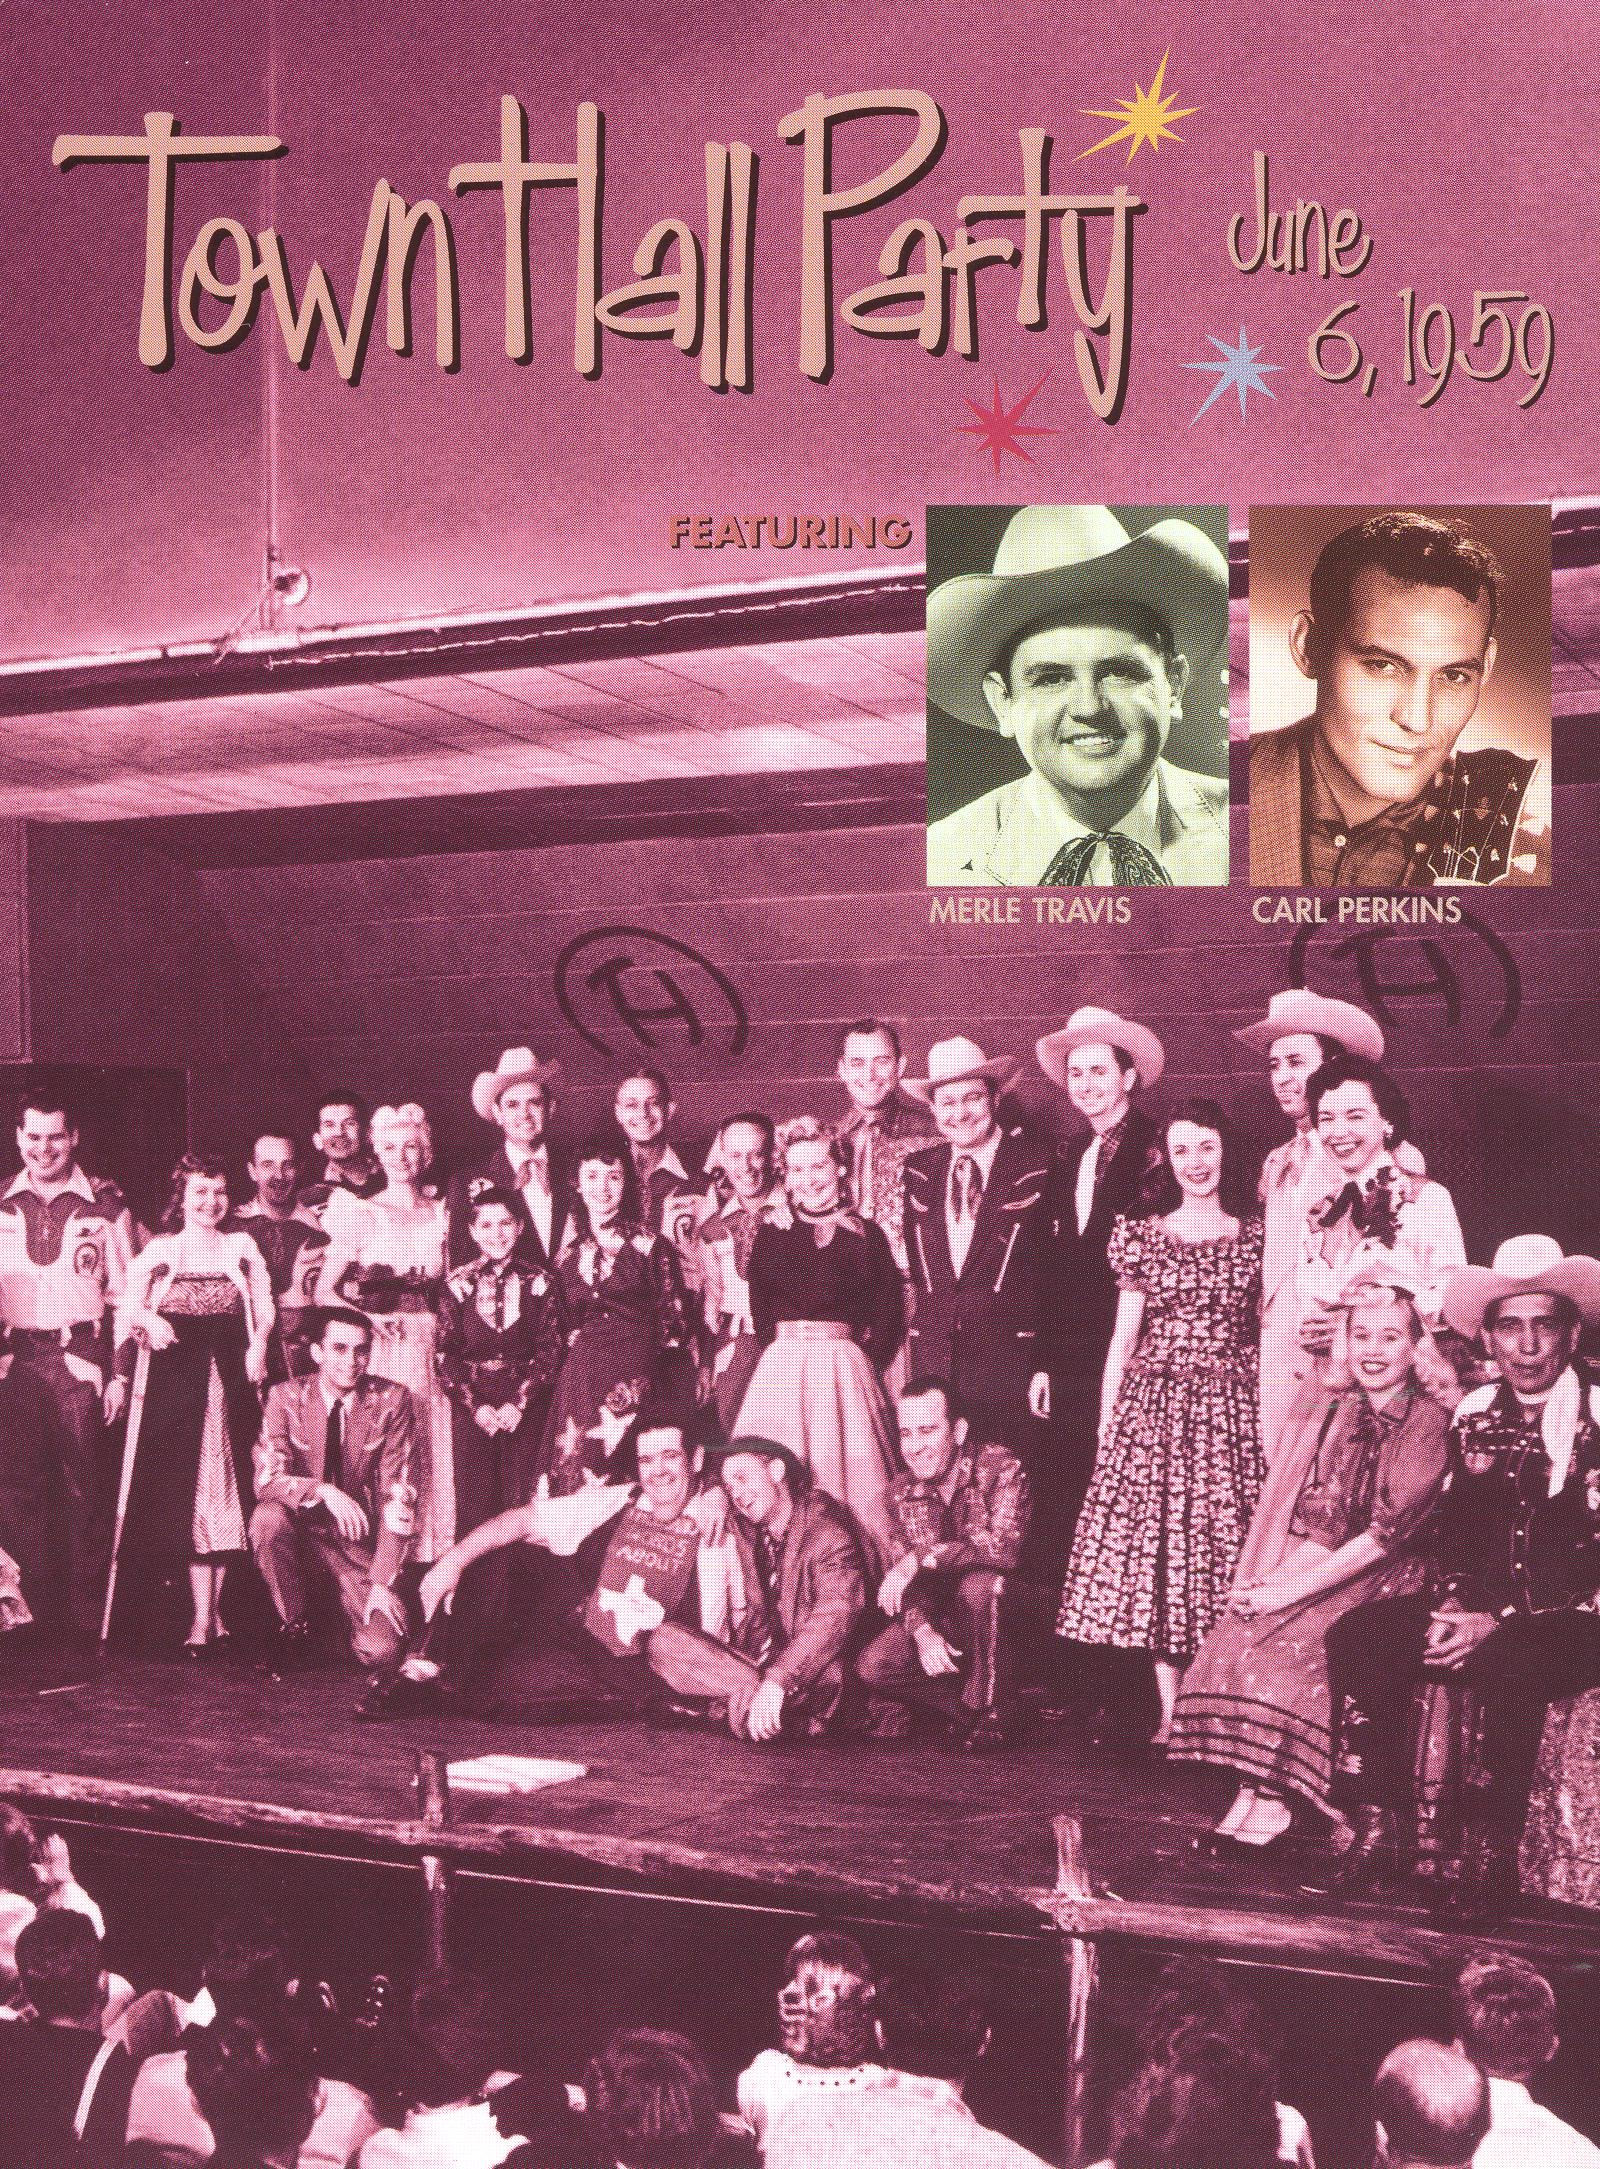 Town Hall Party: June 6, 1959